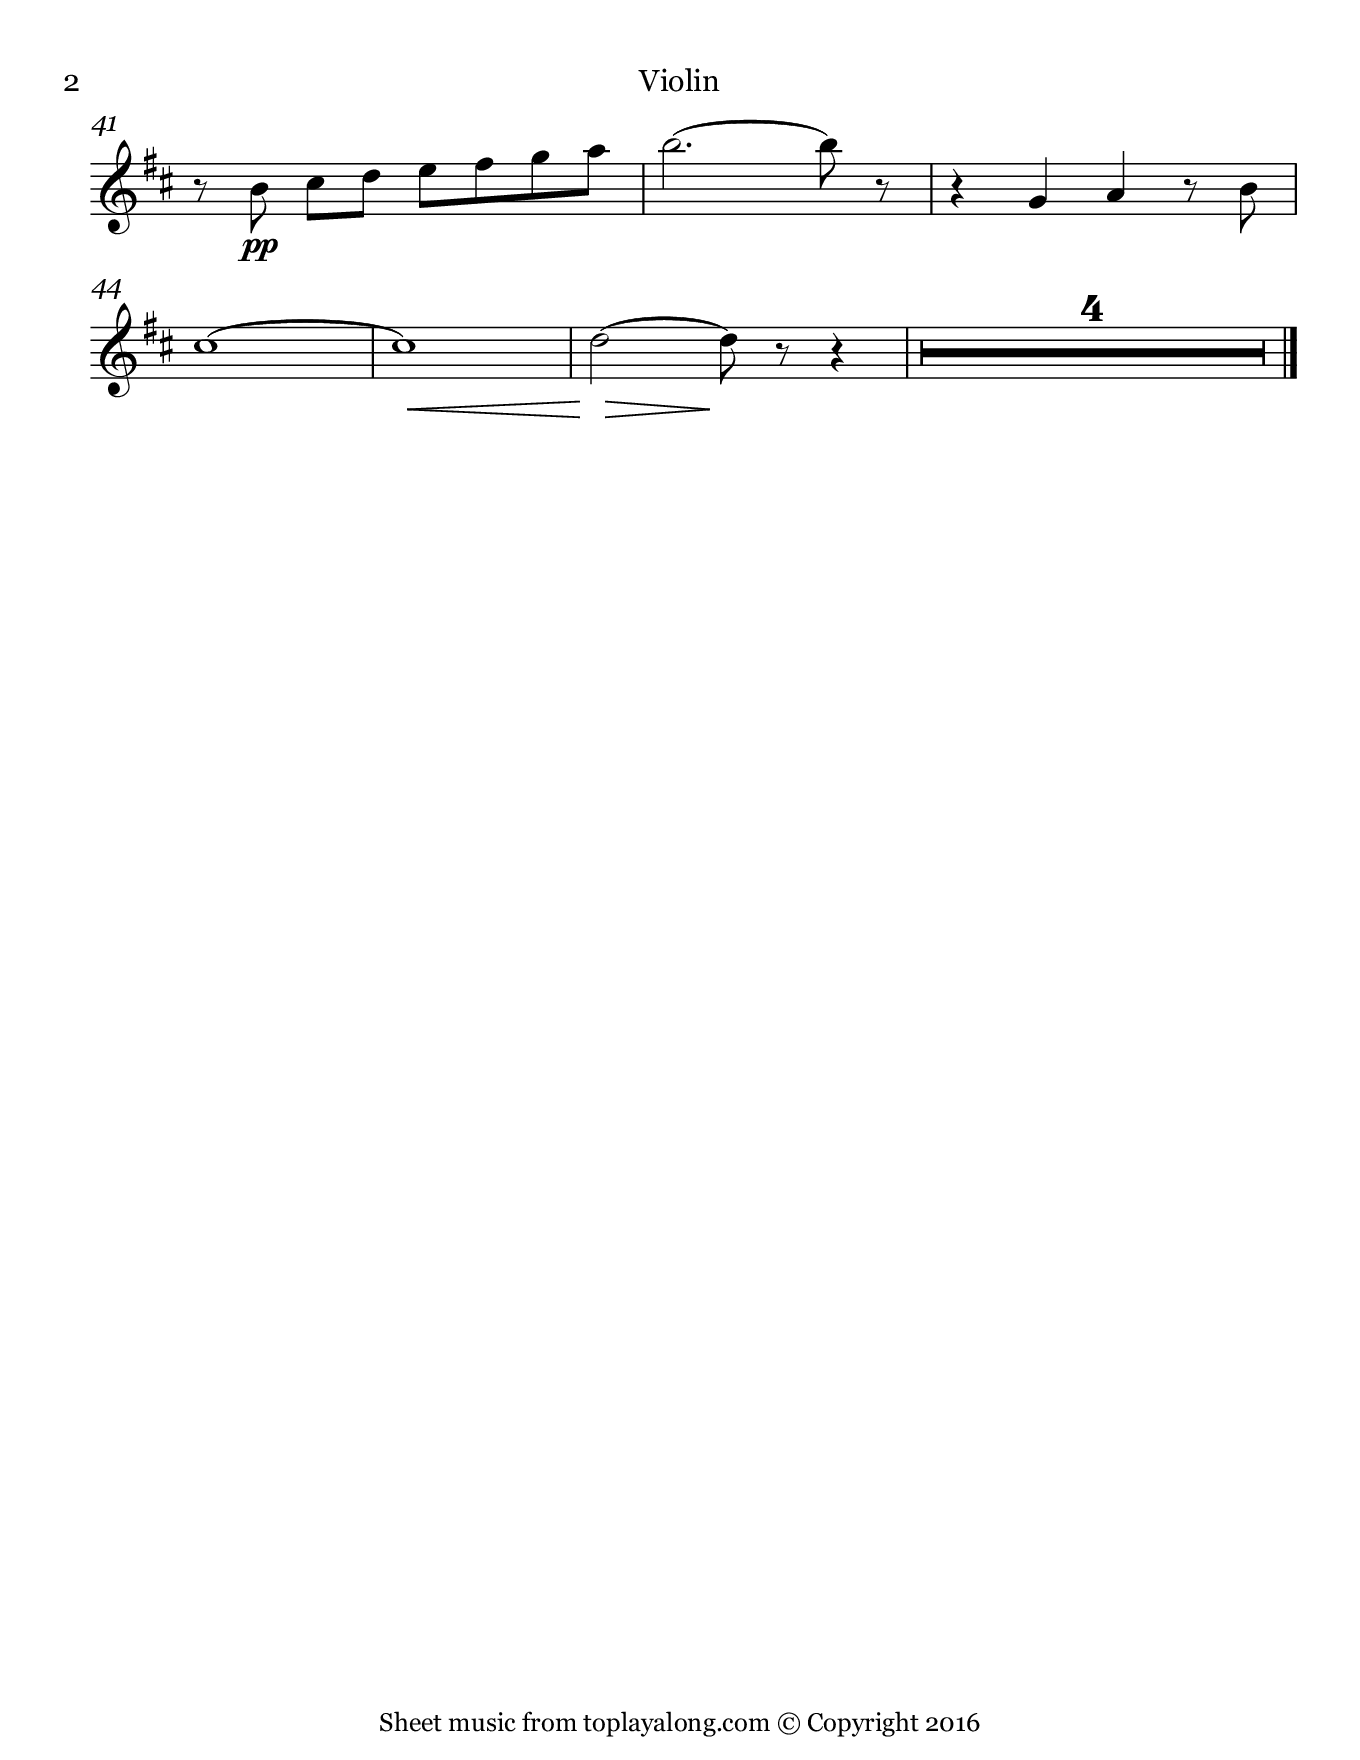 La fleur que tu m'avais jetée from Carmen by Bizet. Sheet music for Violin, page 2.